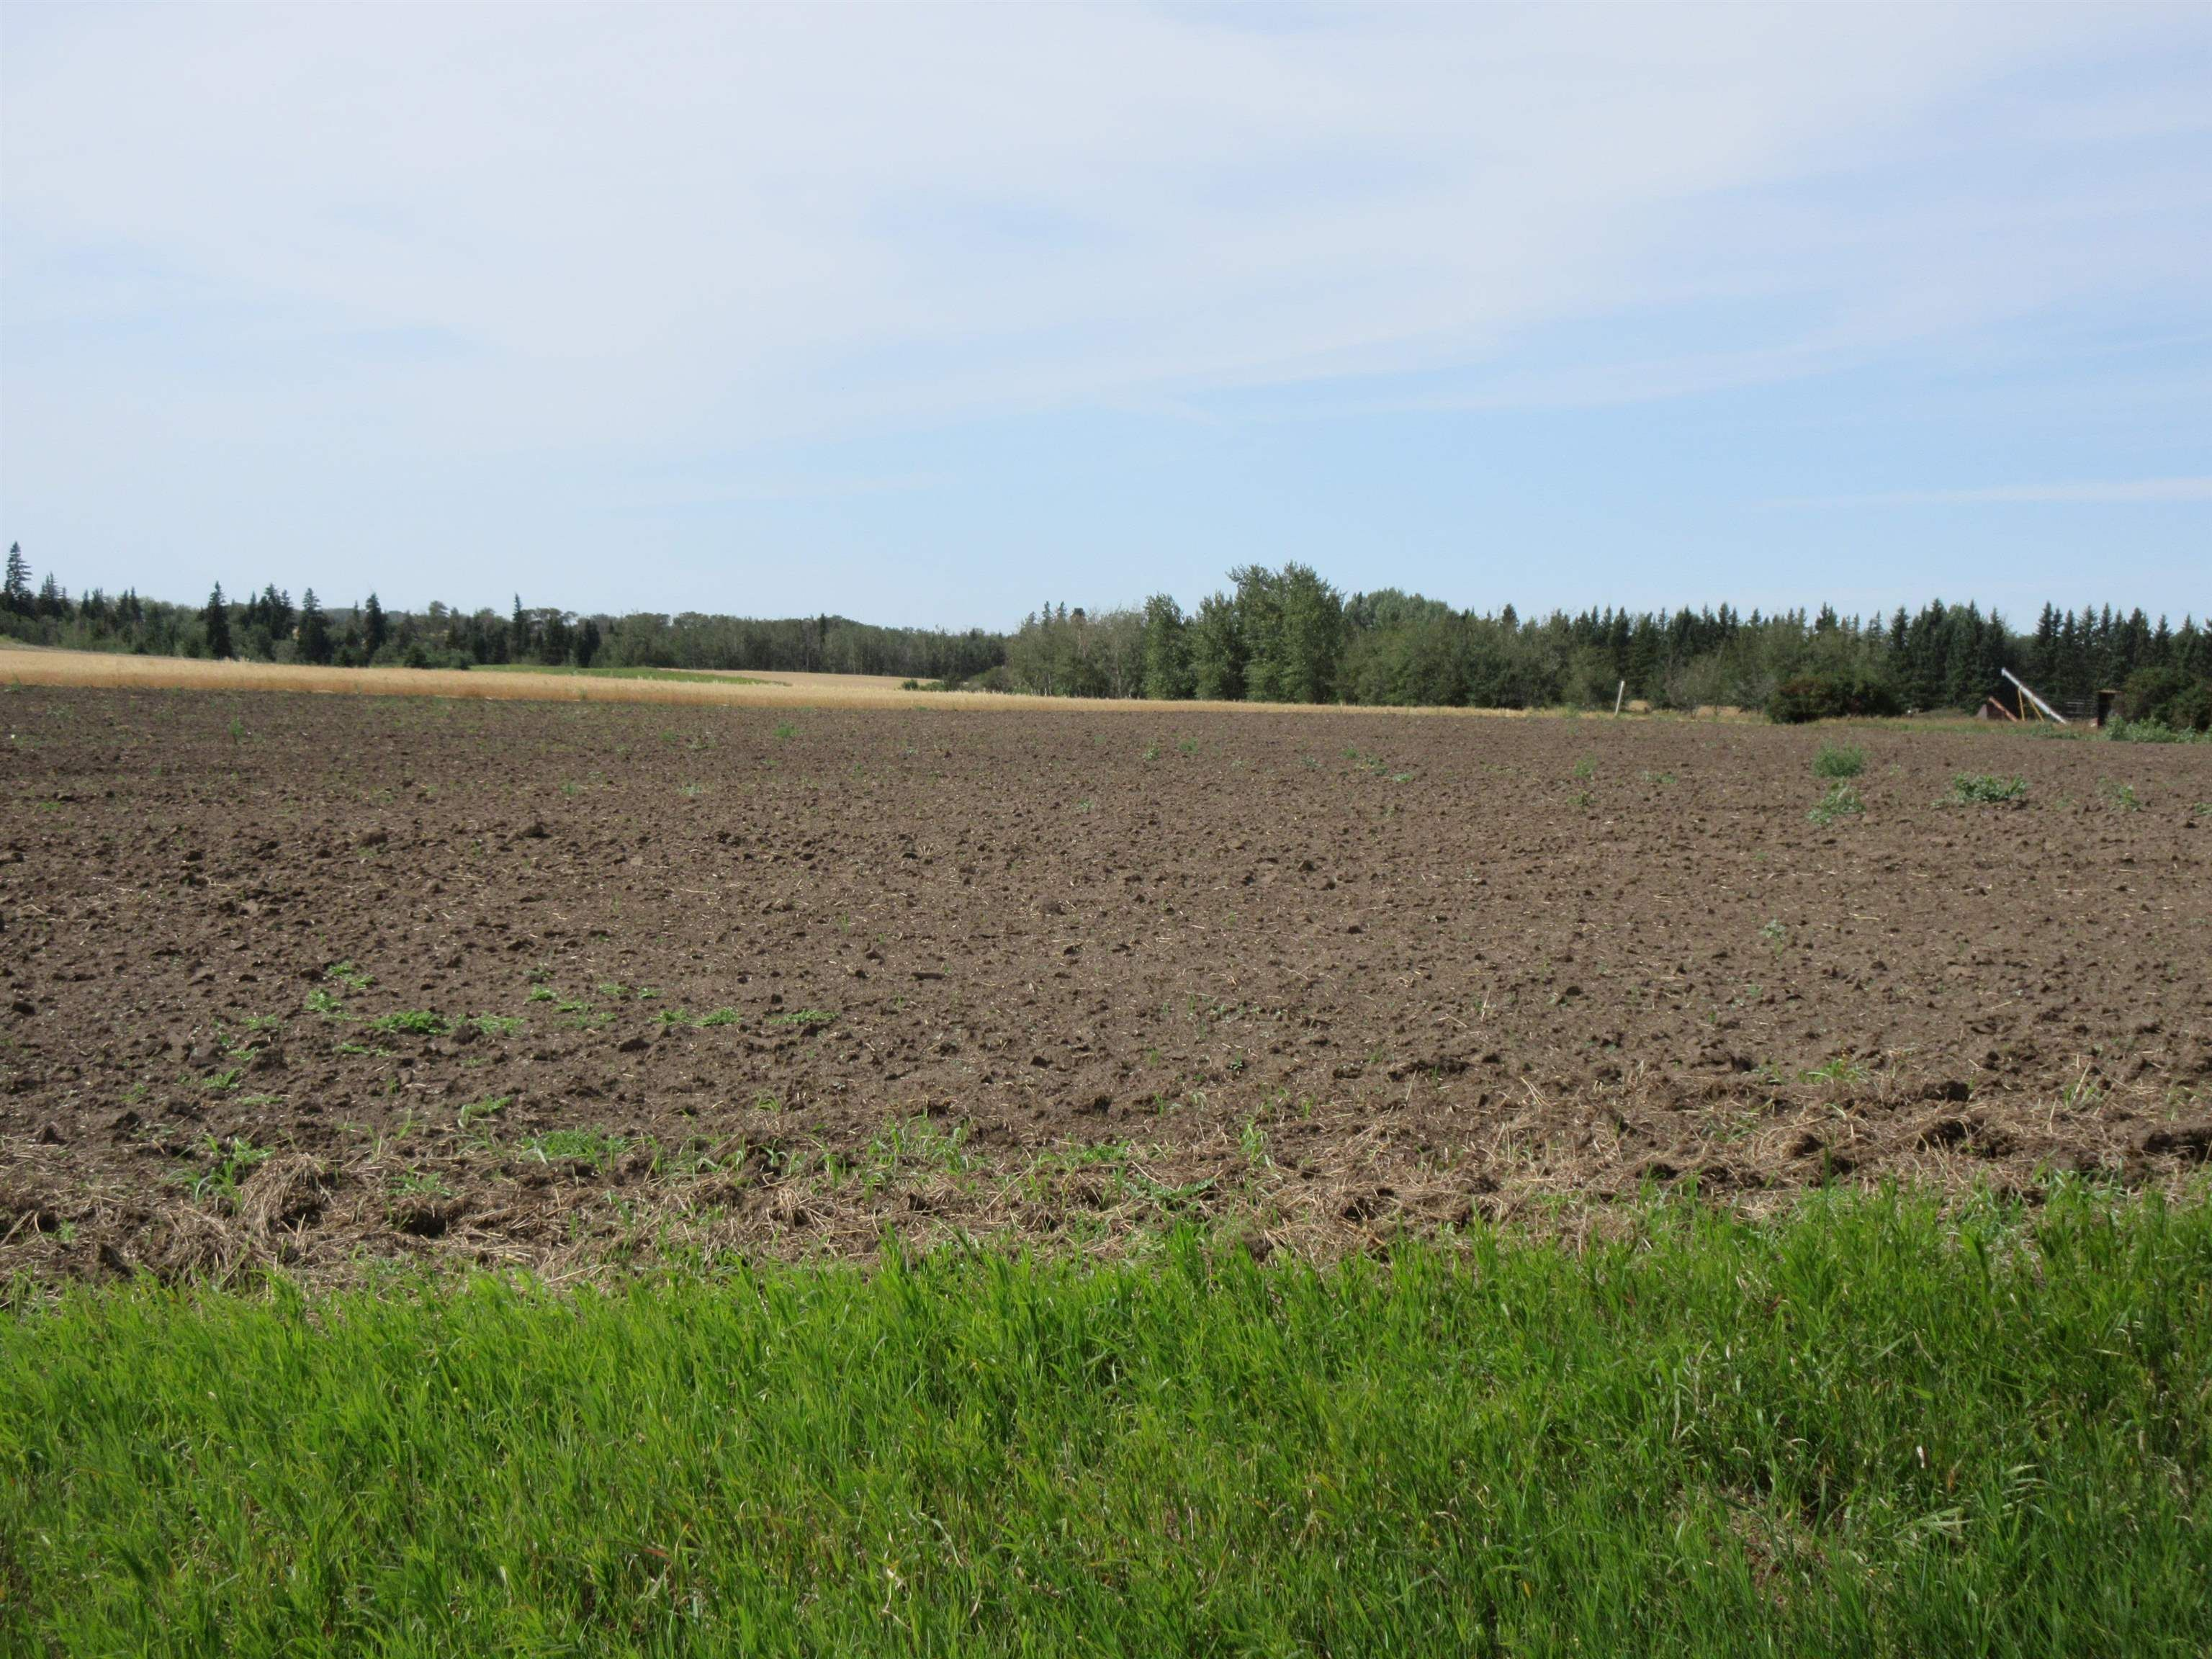 Main Photo: 55516 RR 241: Rural Sturgeon County Rural Land/Vacant Lot for sale : MLS®# E4259412